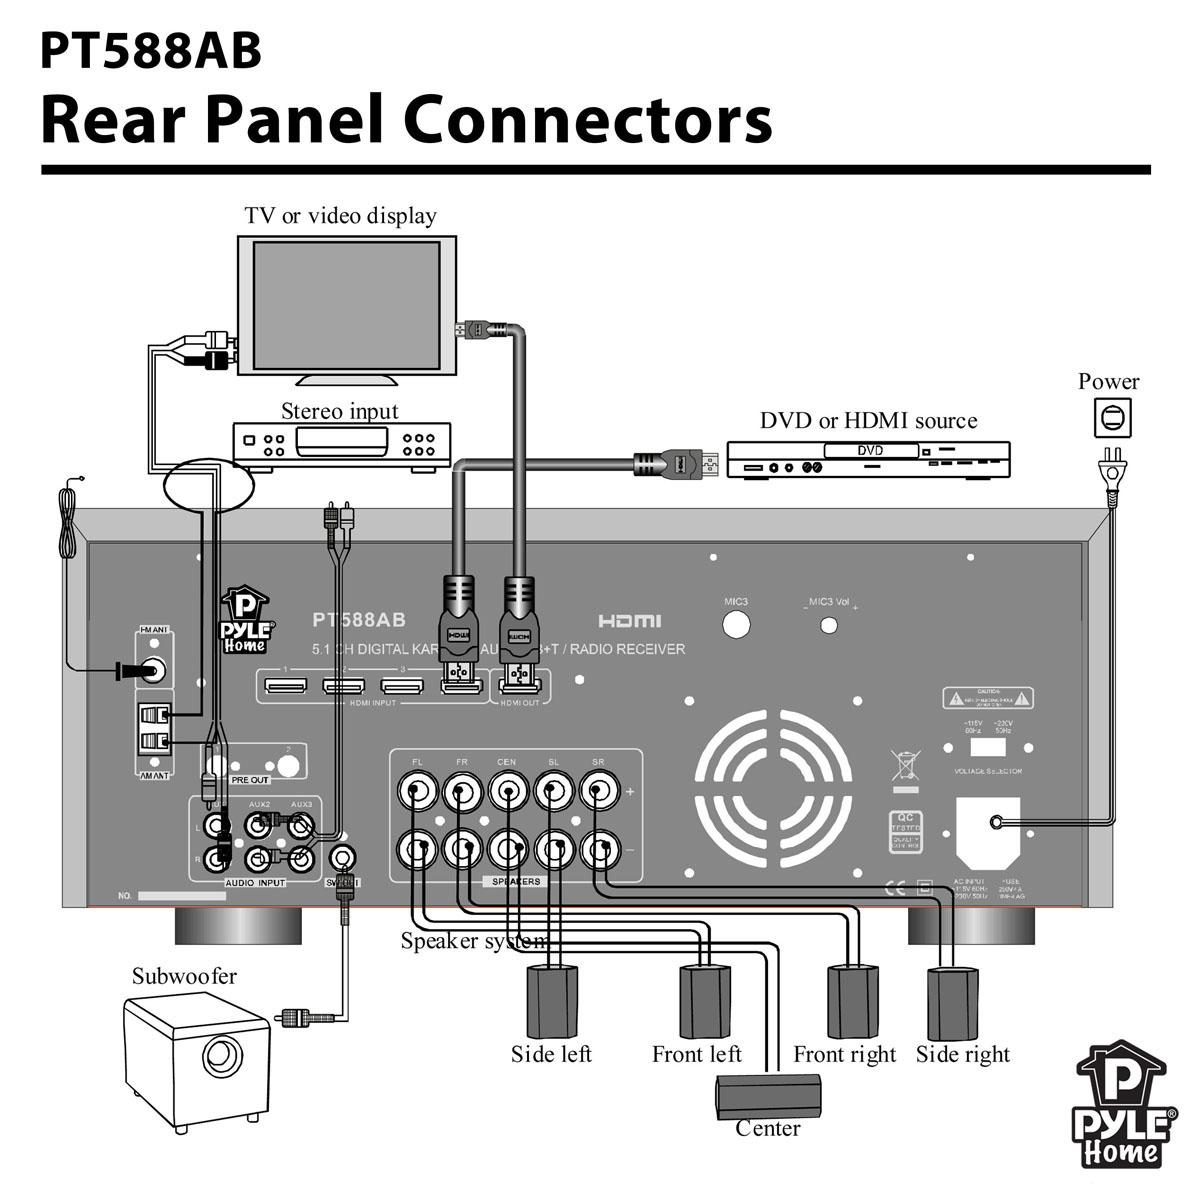 630bb426 e215 45b9 961c 1b9576d4c91e._CB301889668_ amazon com pyle pt588ab 5 1 channel home theater av receiver, bt Speaker Wiring Diagram at mifinder.co